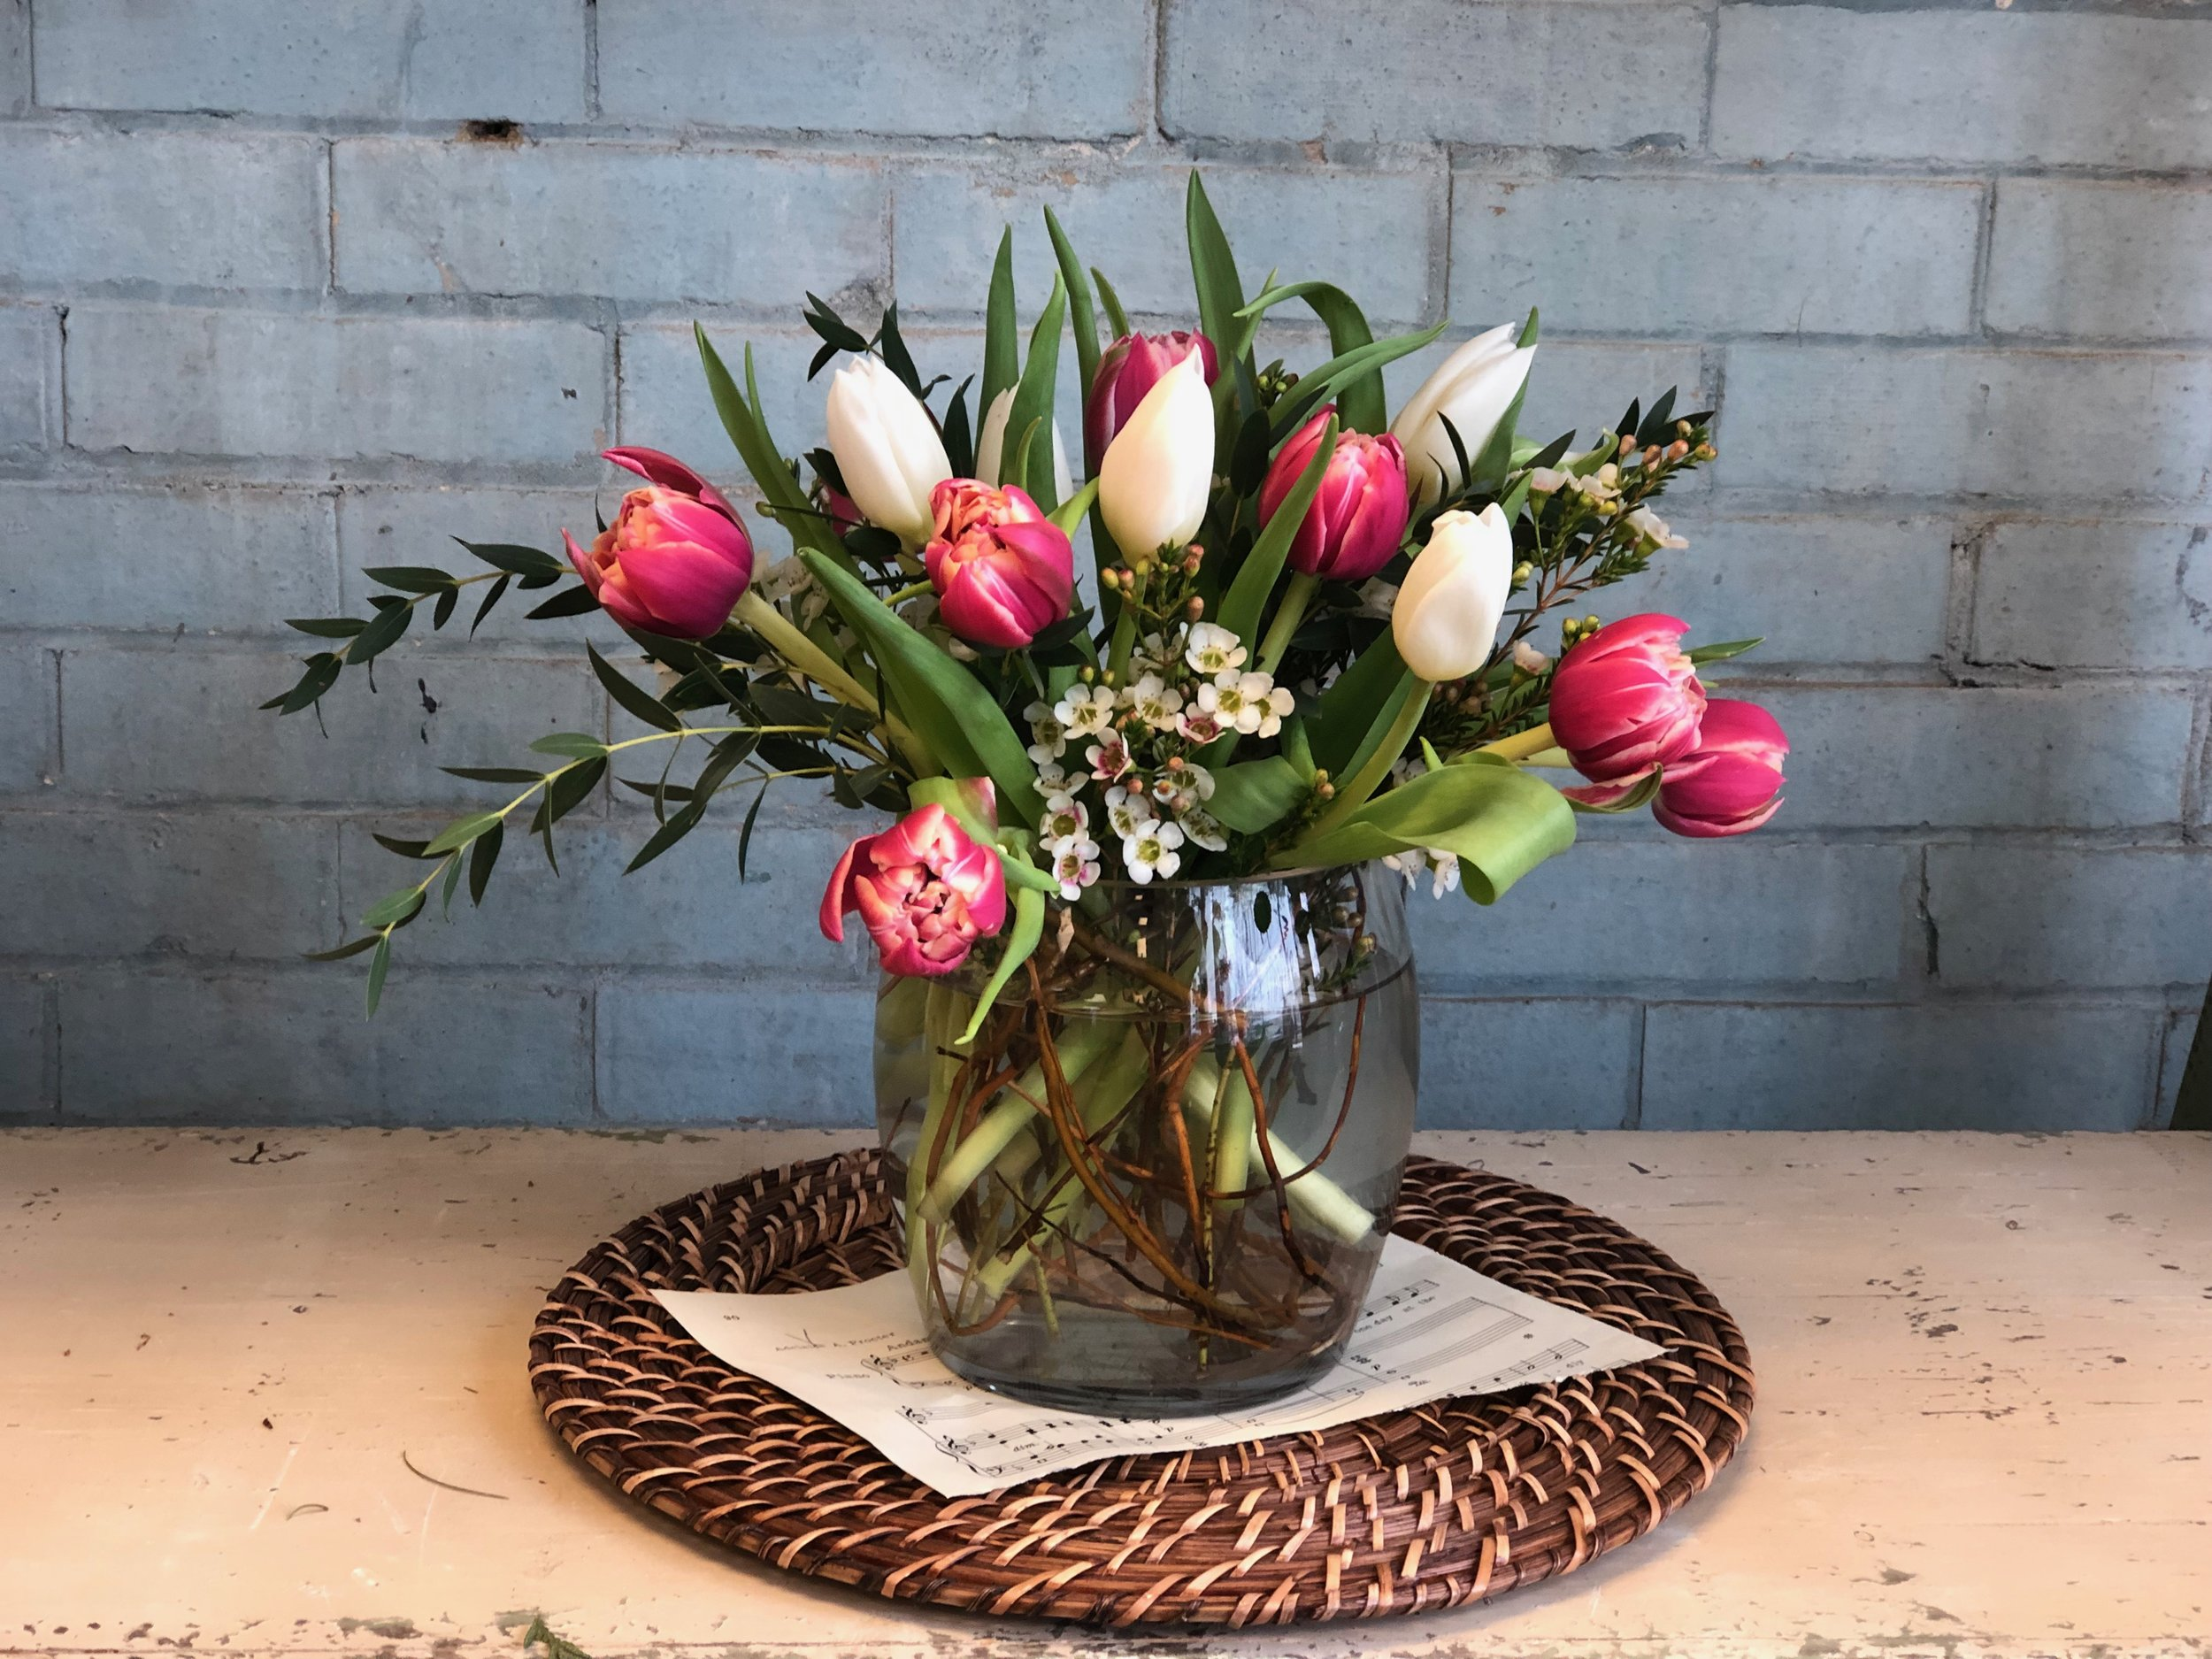 Chase the winter blues away by joining  Merci Beaucoup Floral  on Thursday, January 24, 2019 for a floral arranging workshop featuring colorful TULIPS!  Together we will create a beautiful arrangement guaranteed to brighten your home this winter.  Grab your friends and come for a fun evening of learning and creativity!  Cost is $45.00  Cost includes: Vase, flowers and all supplies.  Light refreshments will also be served.   Follow the link for more information or to register!   Eventbrite Tickets